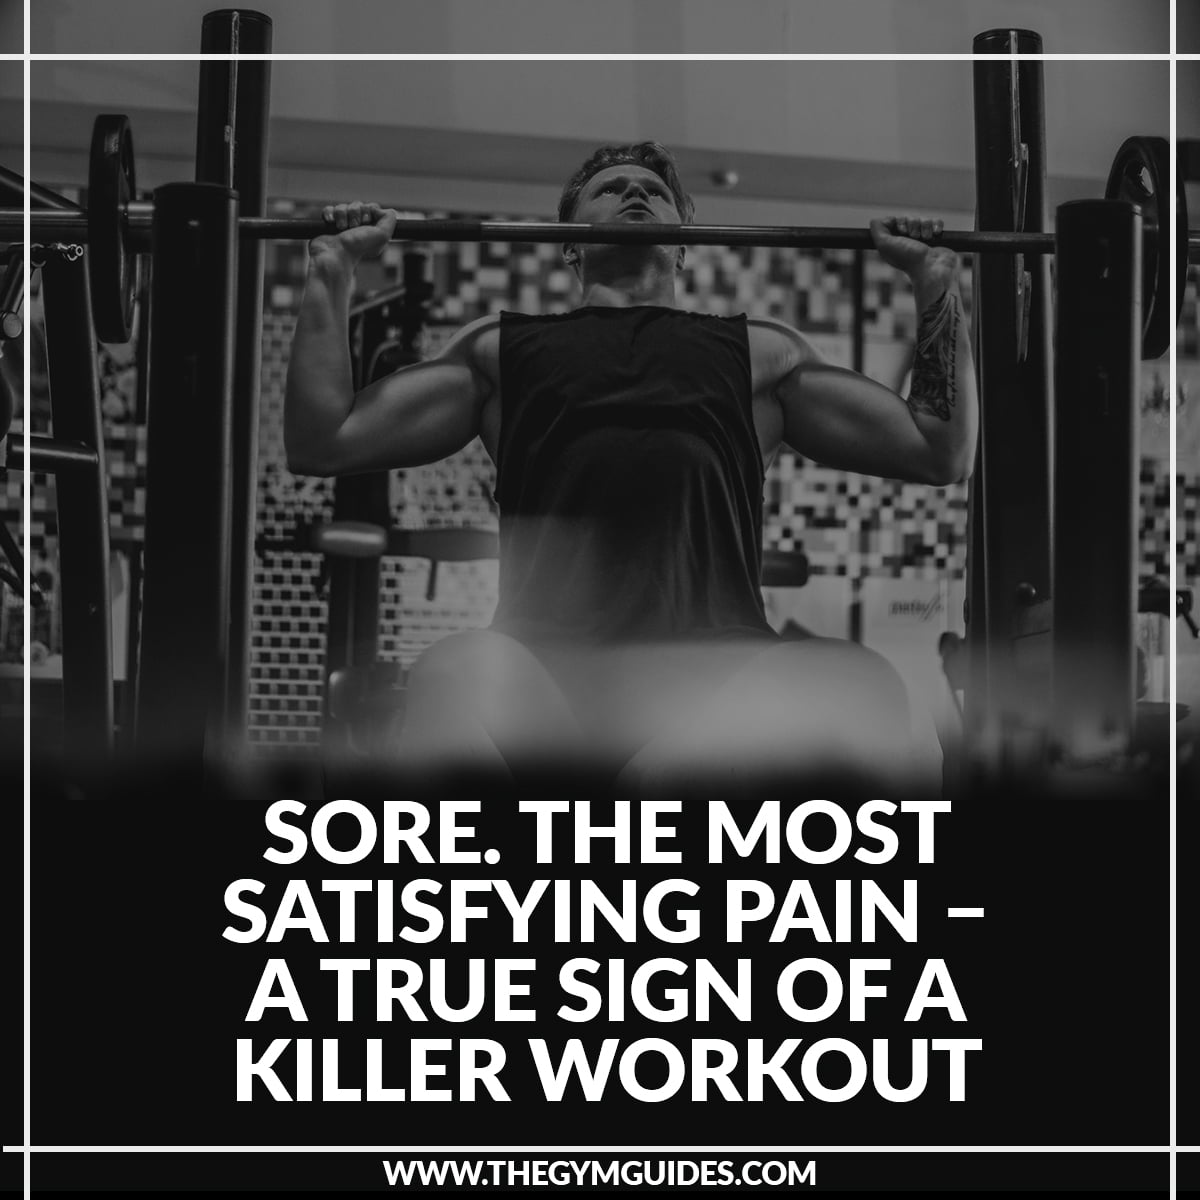 SORE. The Most Satisfying Pain – a true sign of a killer workout